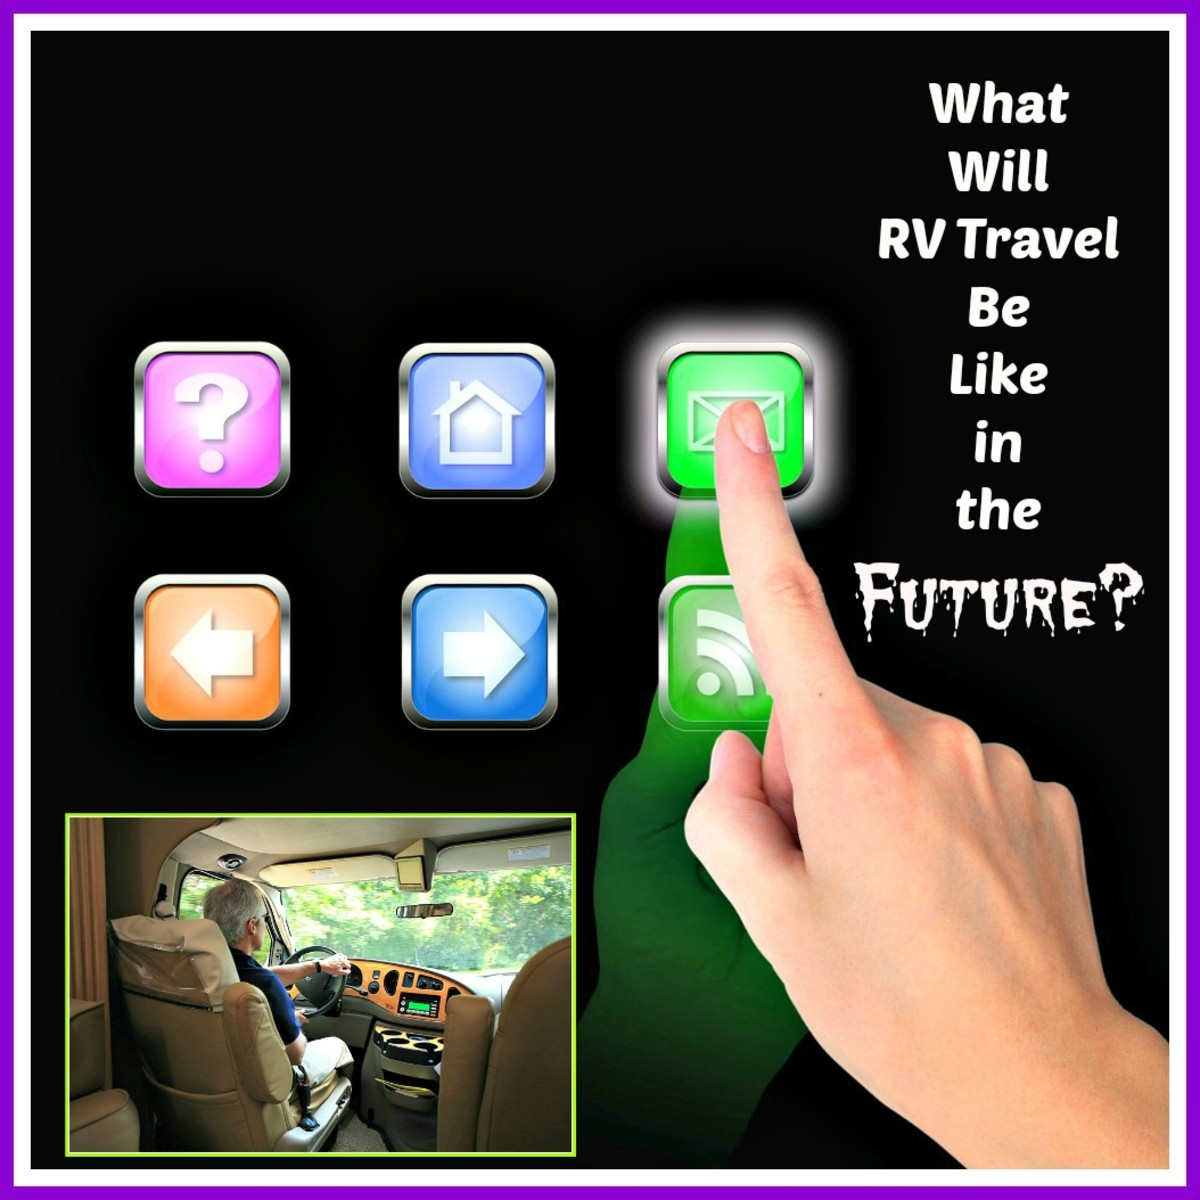 What Will RV Travel Be Like in the Future?